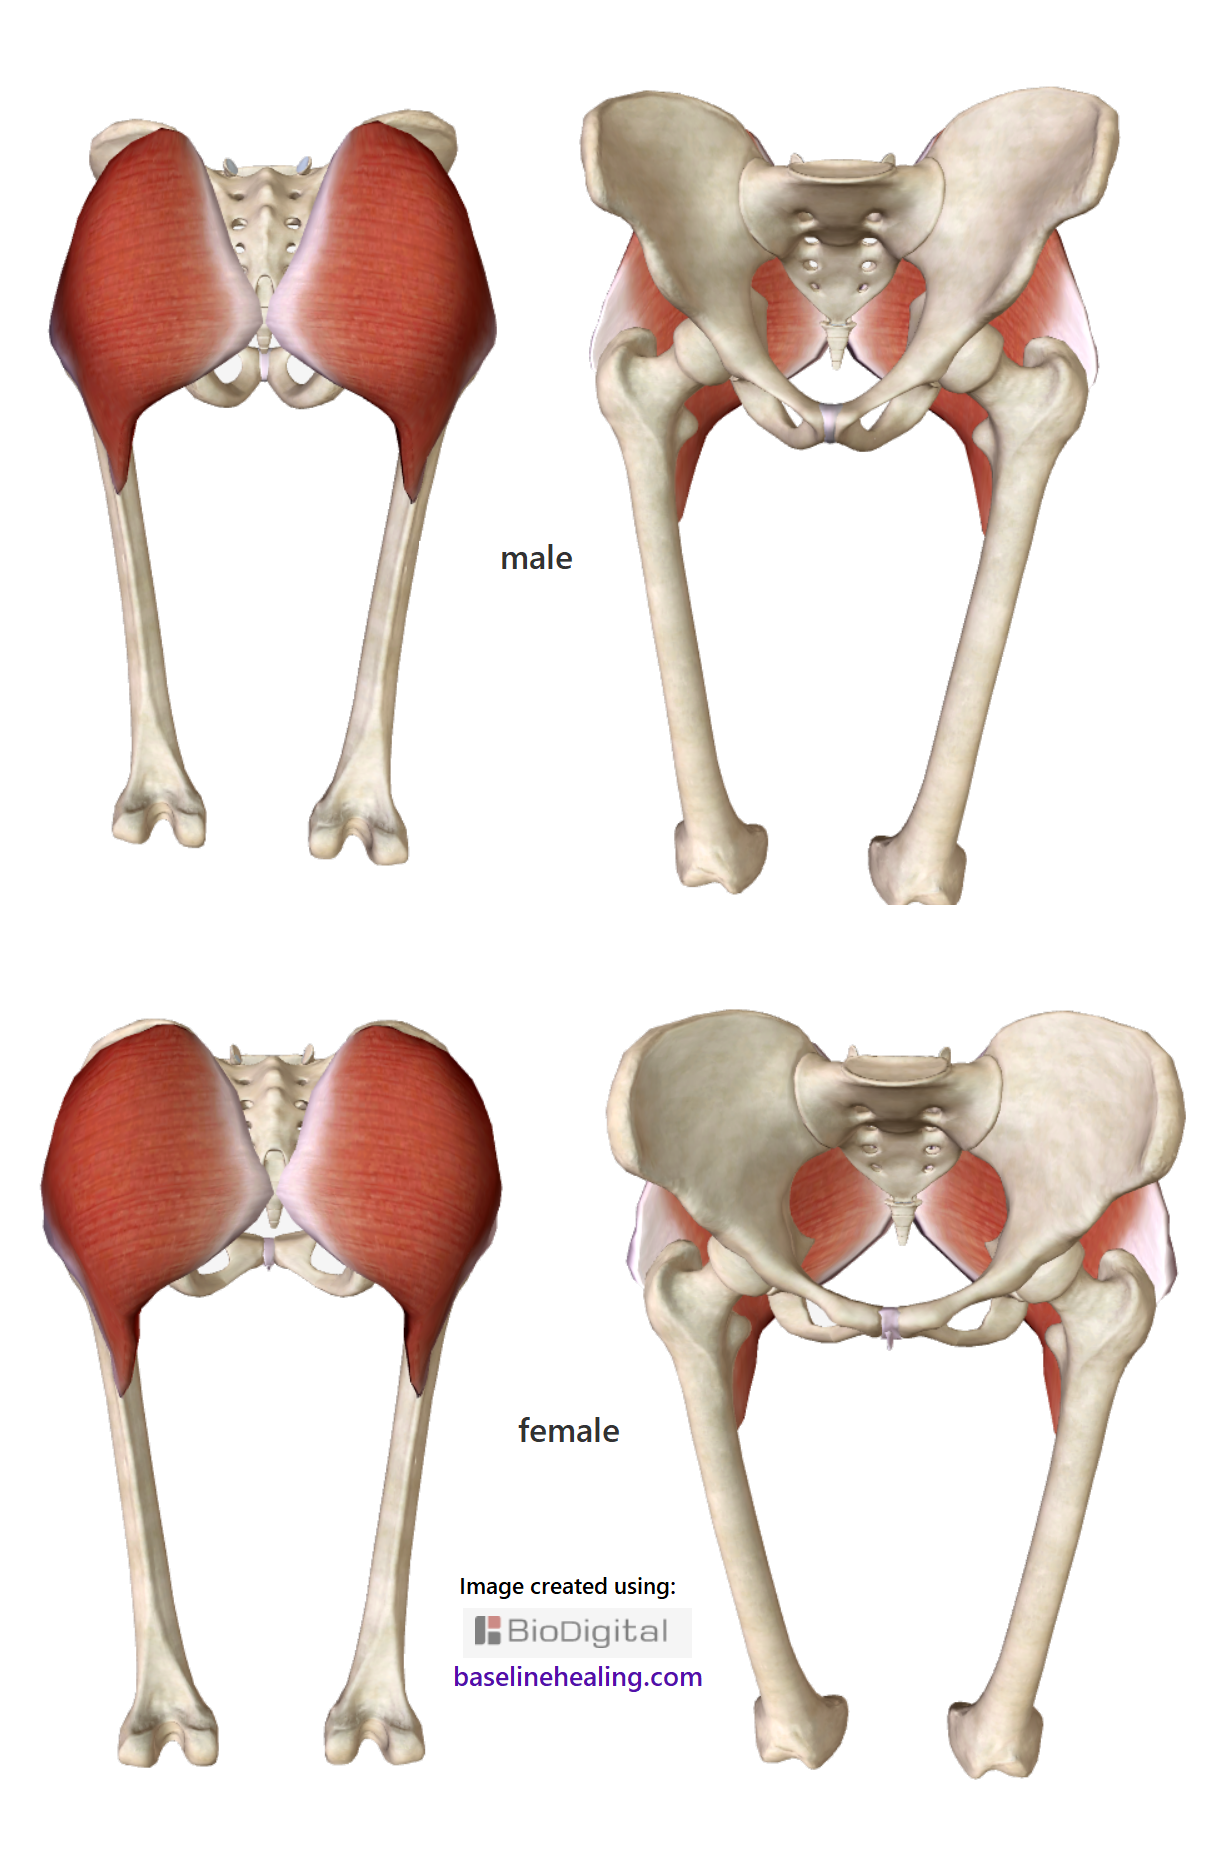 The gluteus maximus muscles, bones of the pelvis, sacrum and femur are shown. Front and back views. The male pelvis is narrower and triangular and the gluteus maximus, covering the back of the pelvis, a quadrilateral shape with the outer margins quite straight. The female pelvis is wider and rounder with the gluteus maximus muscles also rounder in shape, curving on the outer margins.